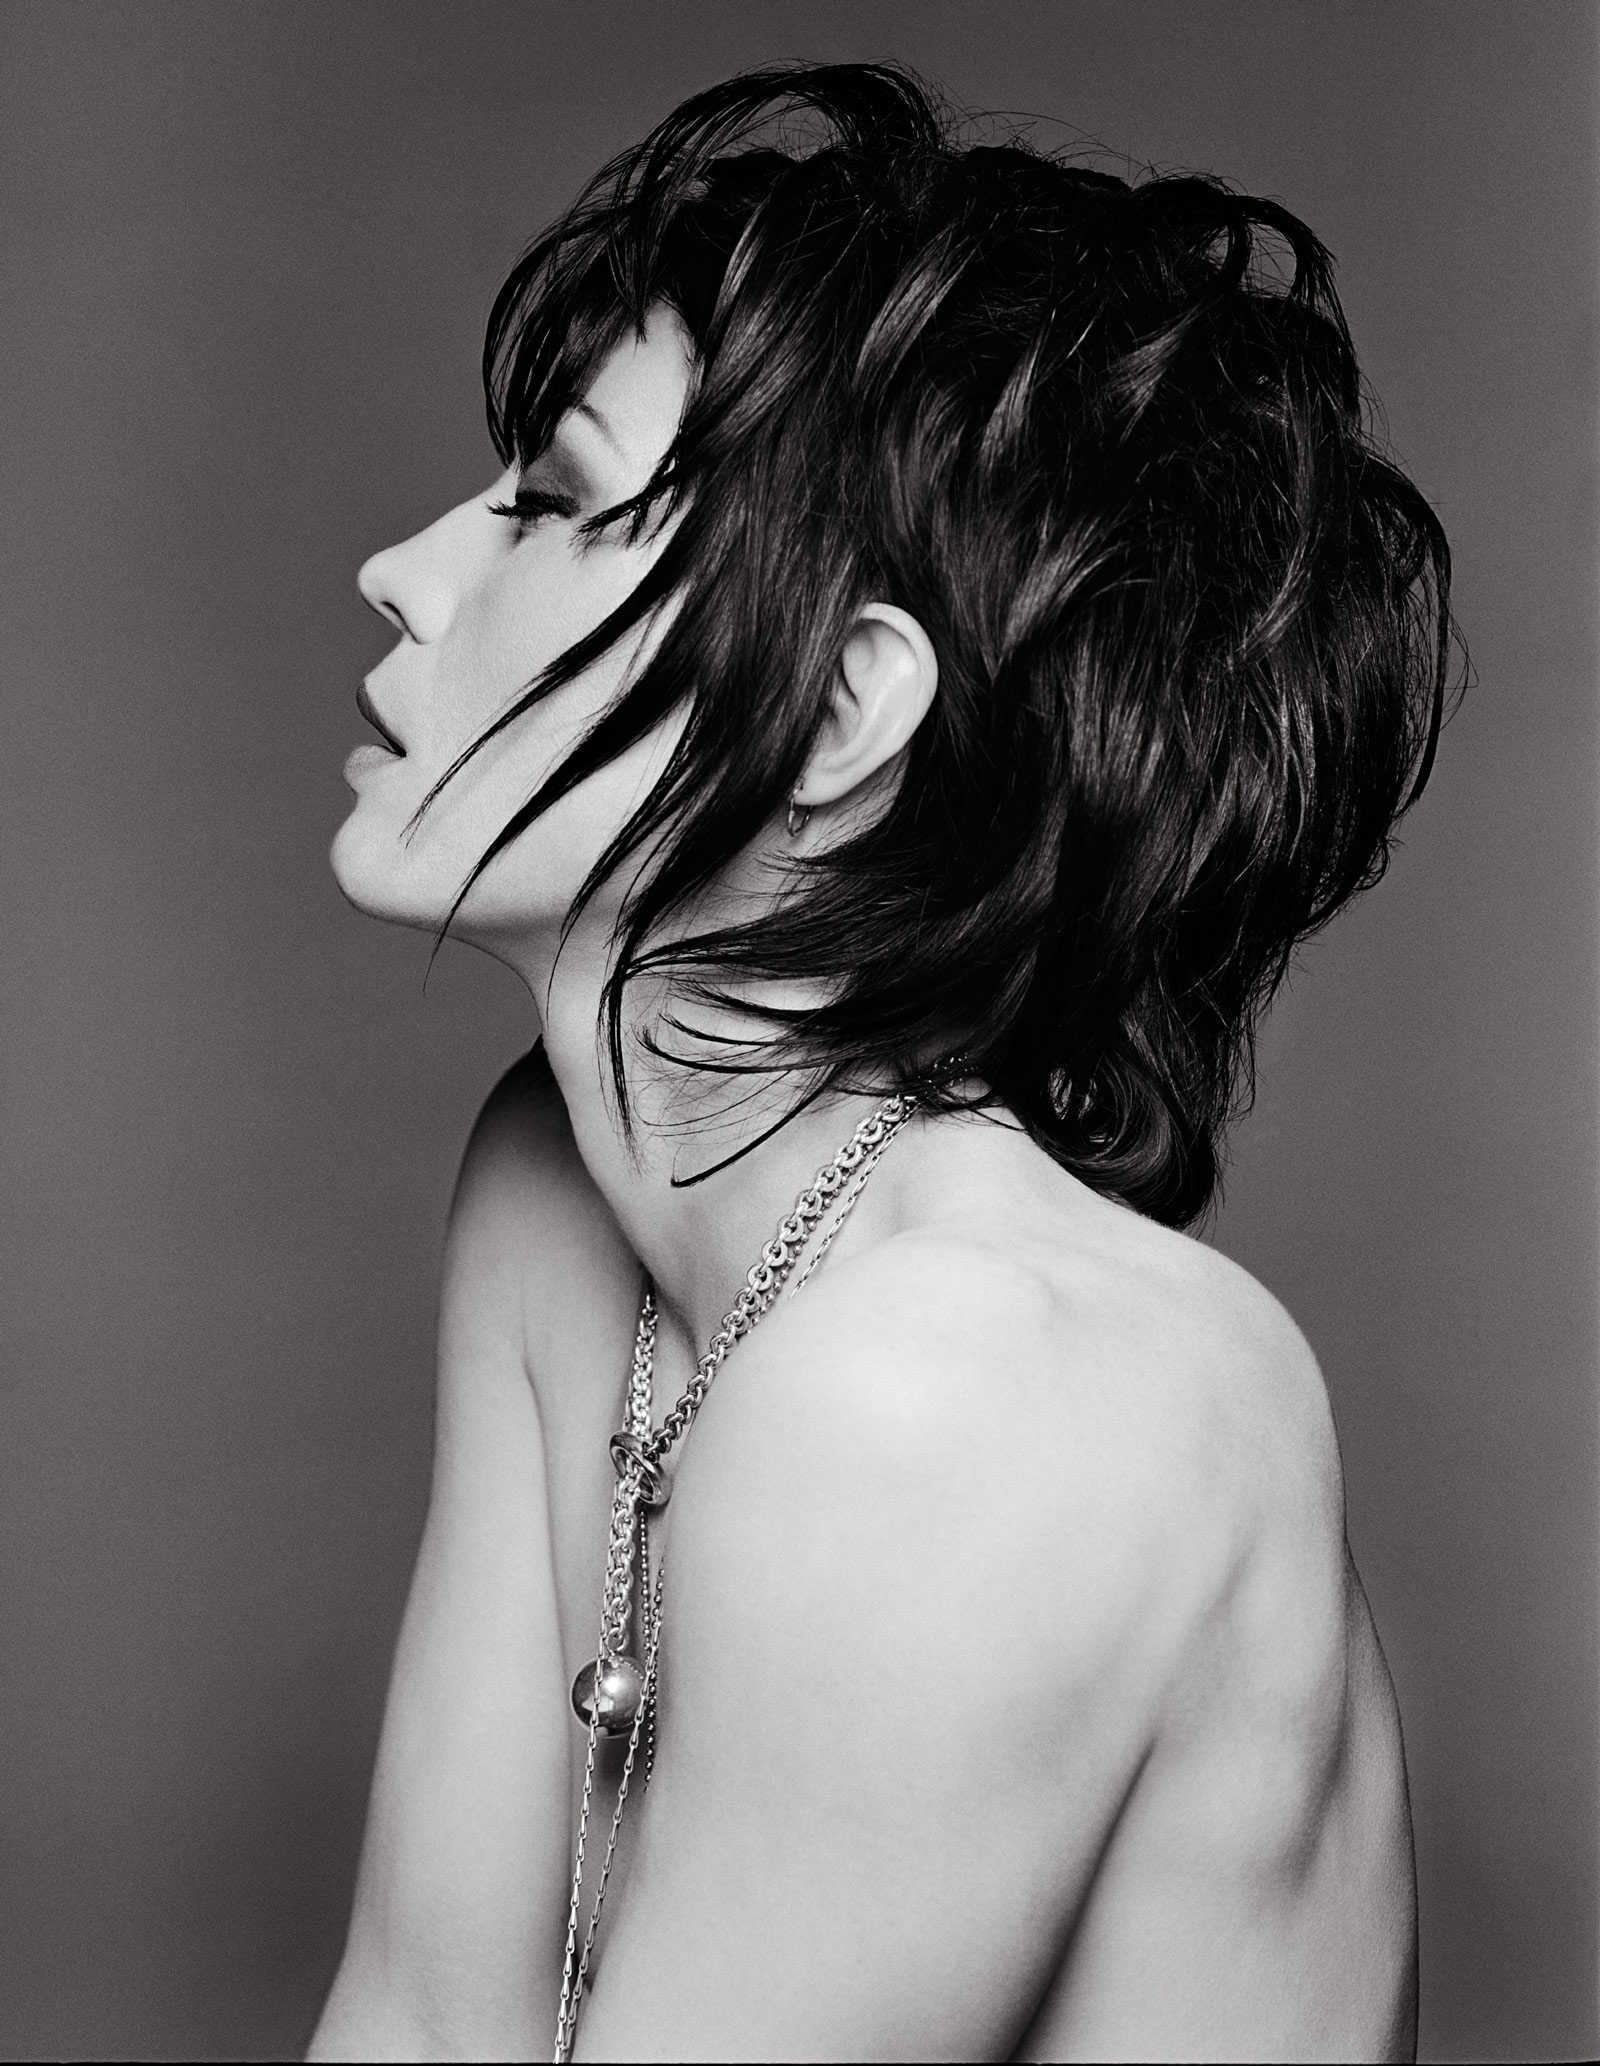 JOAN_JETT_1_NEW_YORK_©1994_GEORGE_HOLZ_W